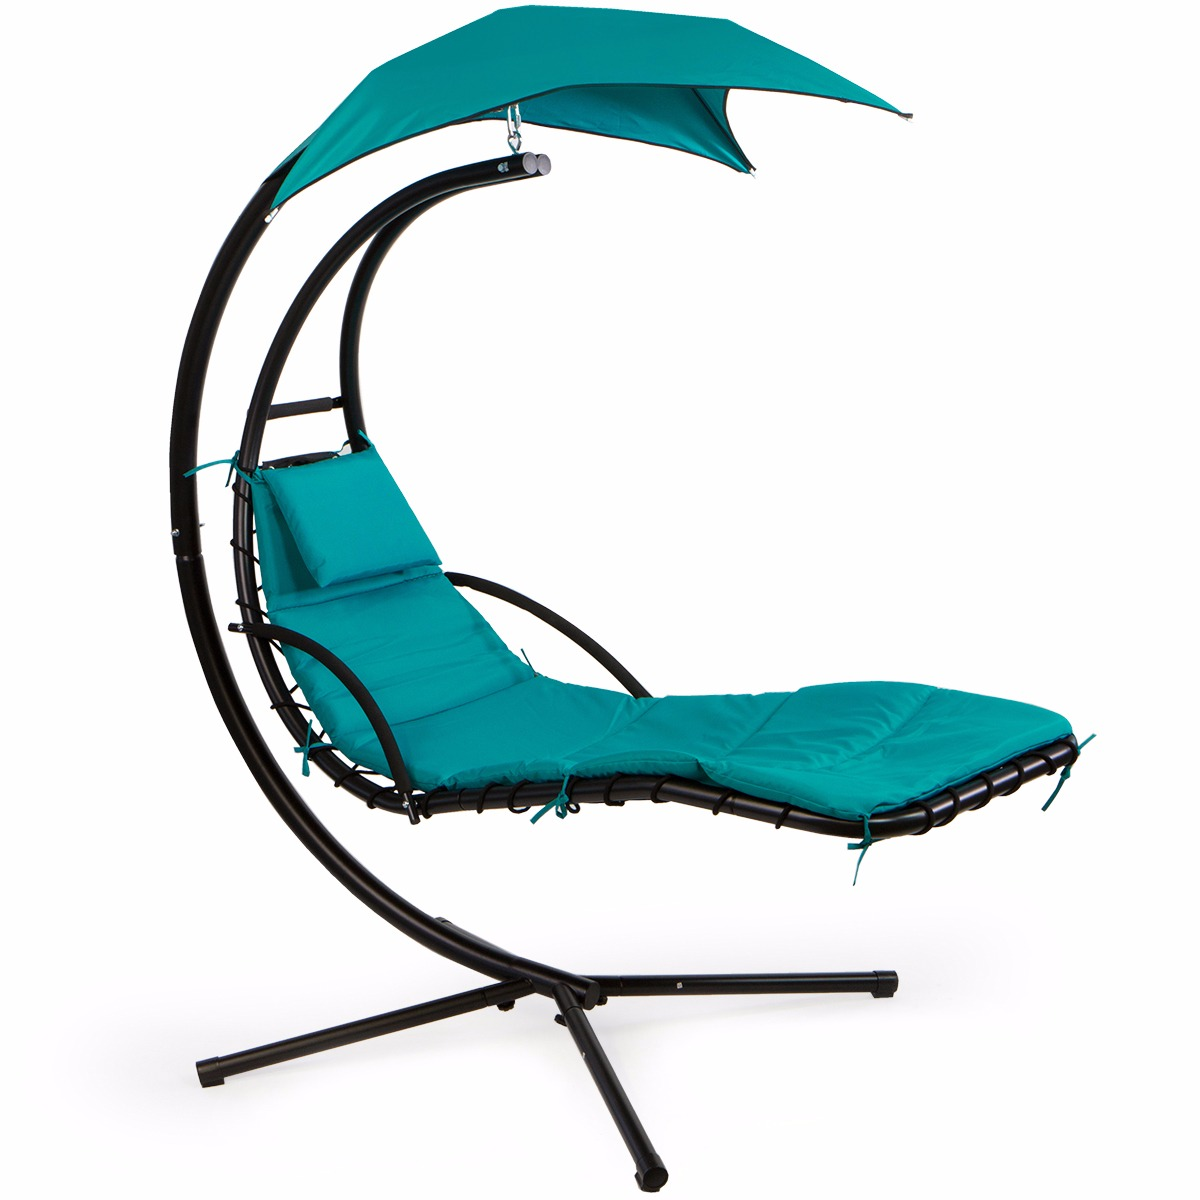 Patio Swing Chair Lounger Hammock Sun Canopy Blue  sc 1 st  Walmart & Patio Swing Chair Lounger Hammock Sun Canopy Blue - Walmart.com